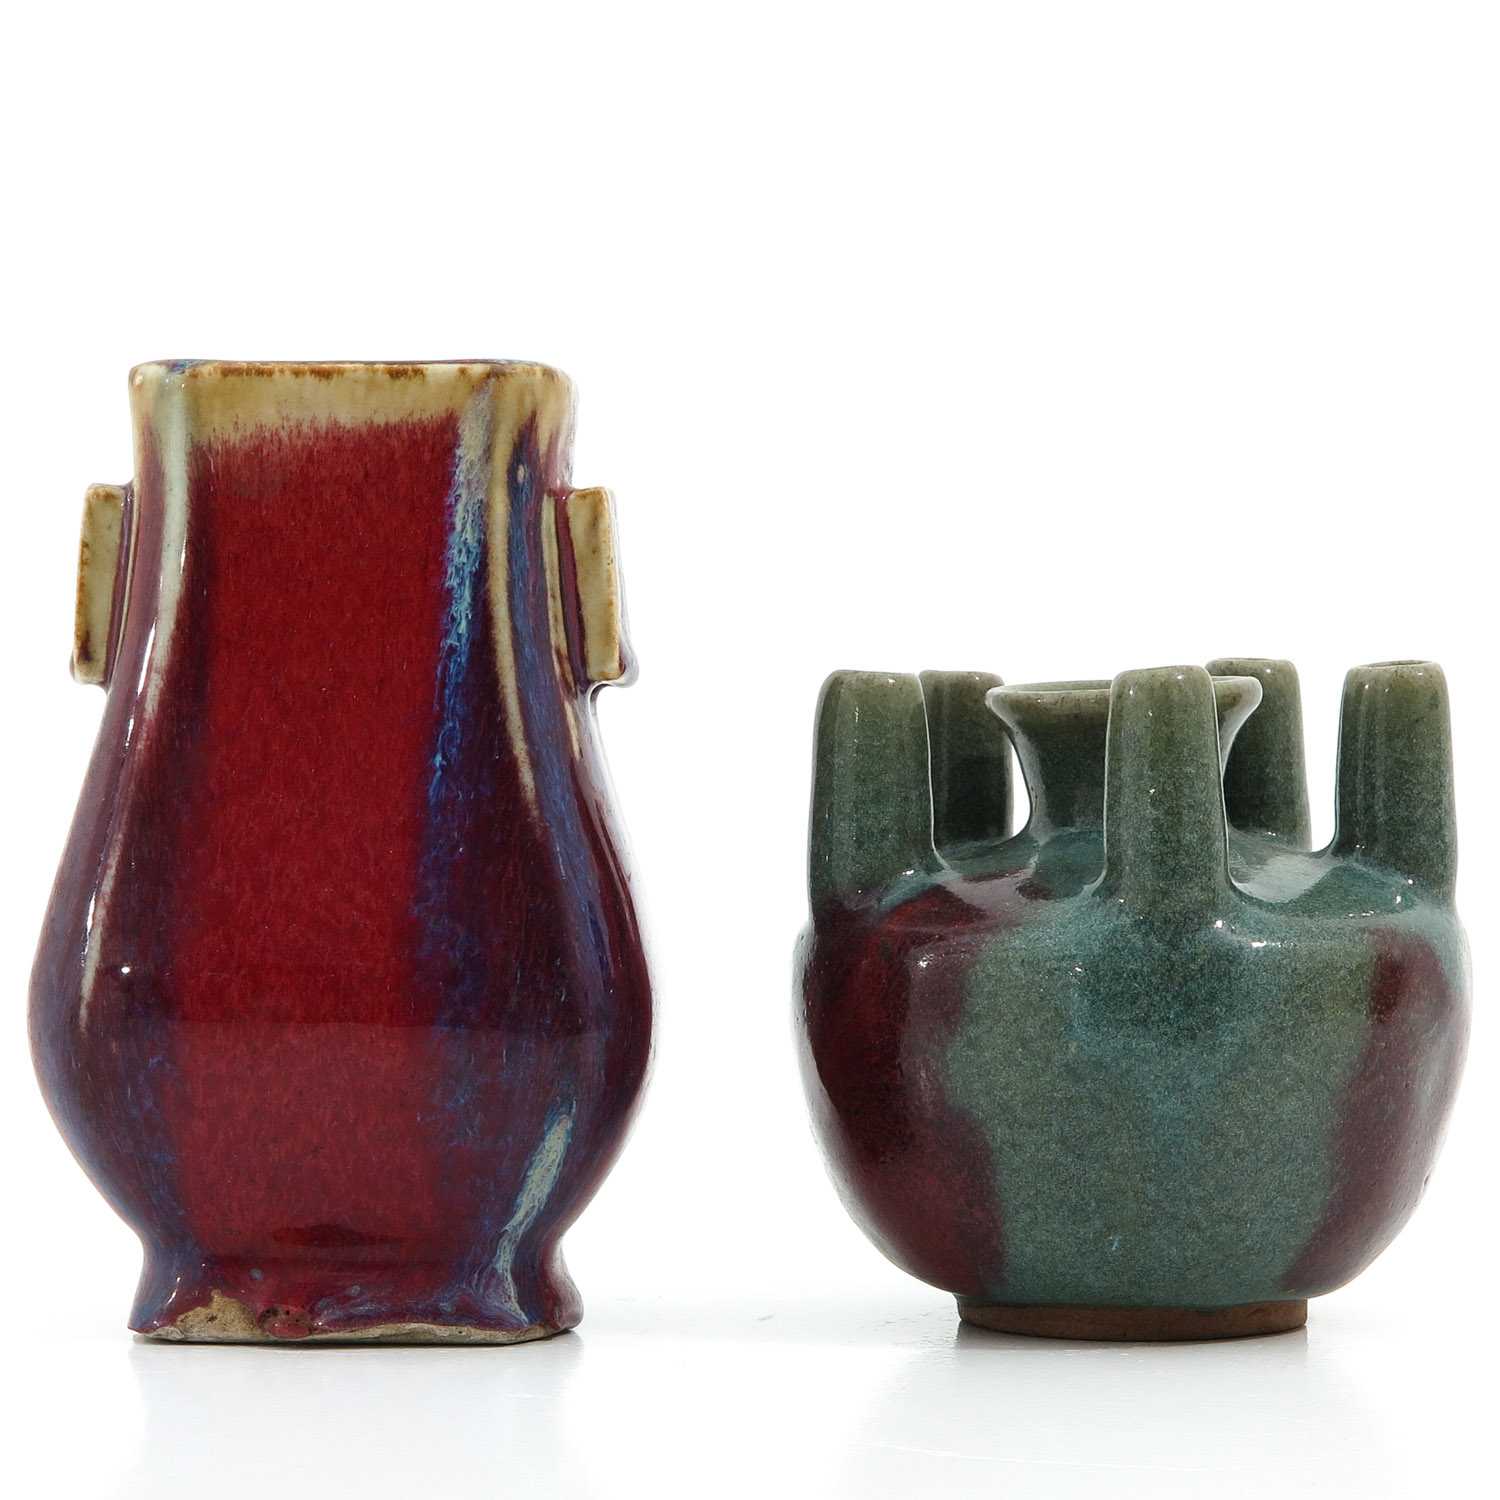 2 Chinese Vases - Image 3 of 10